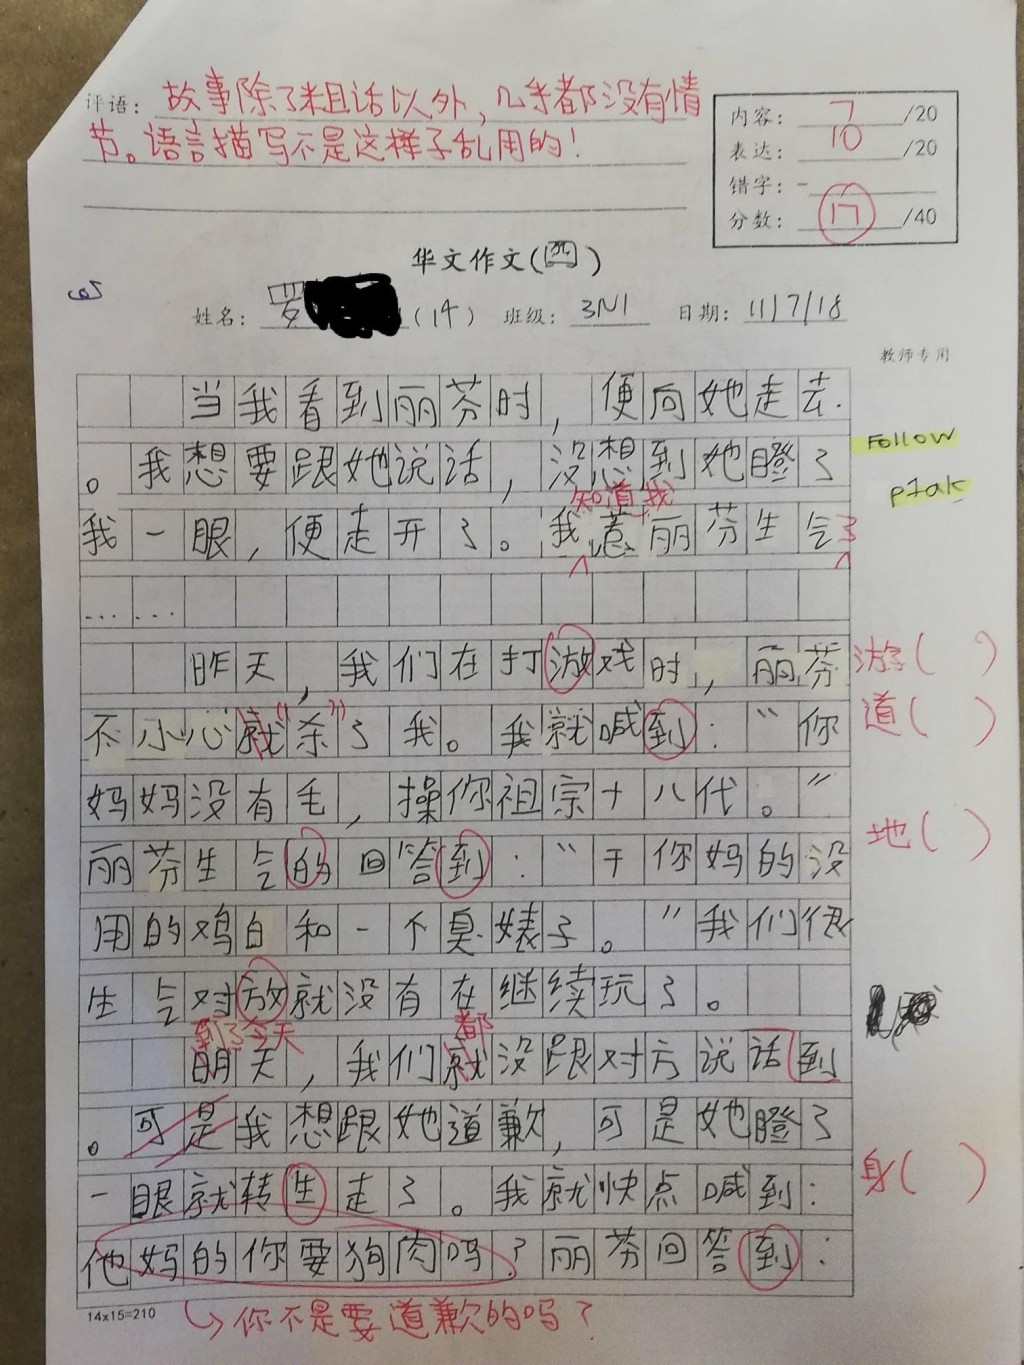 017 Essay Example Wbn5f0l88kj11 Amazing Chinese Language Writing Letter Format Topics Large